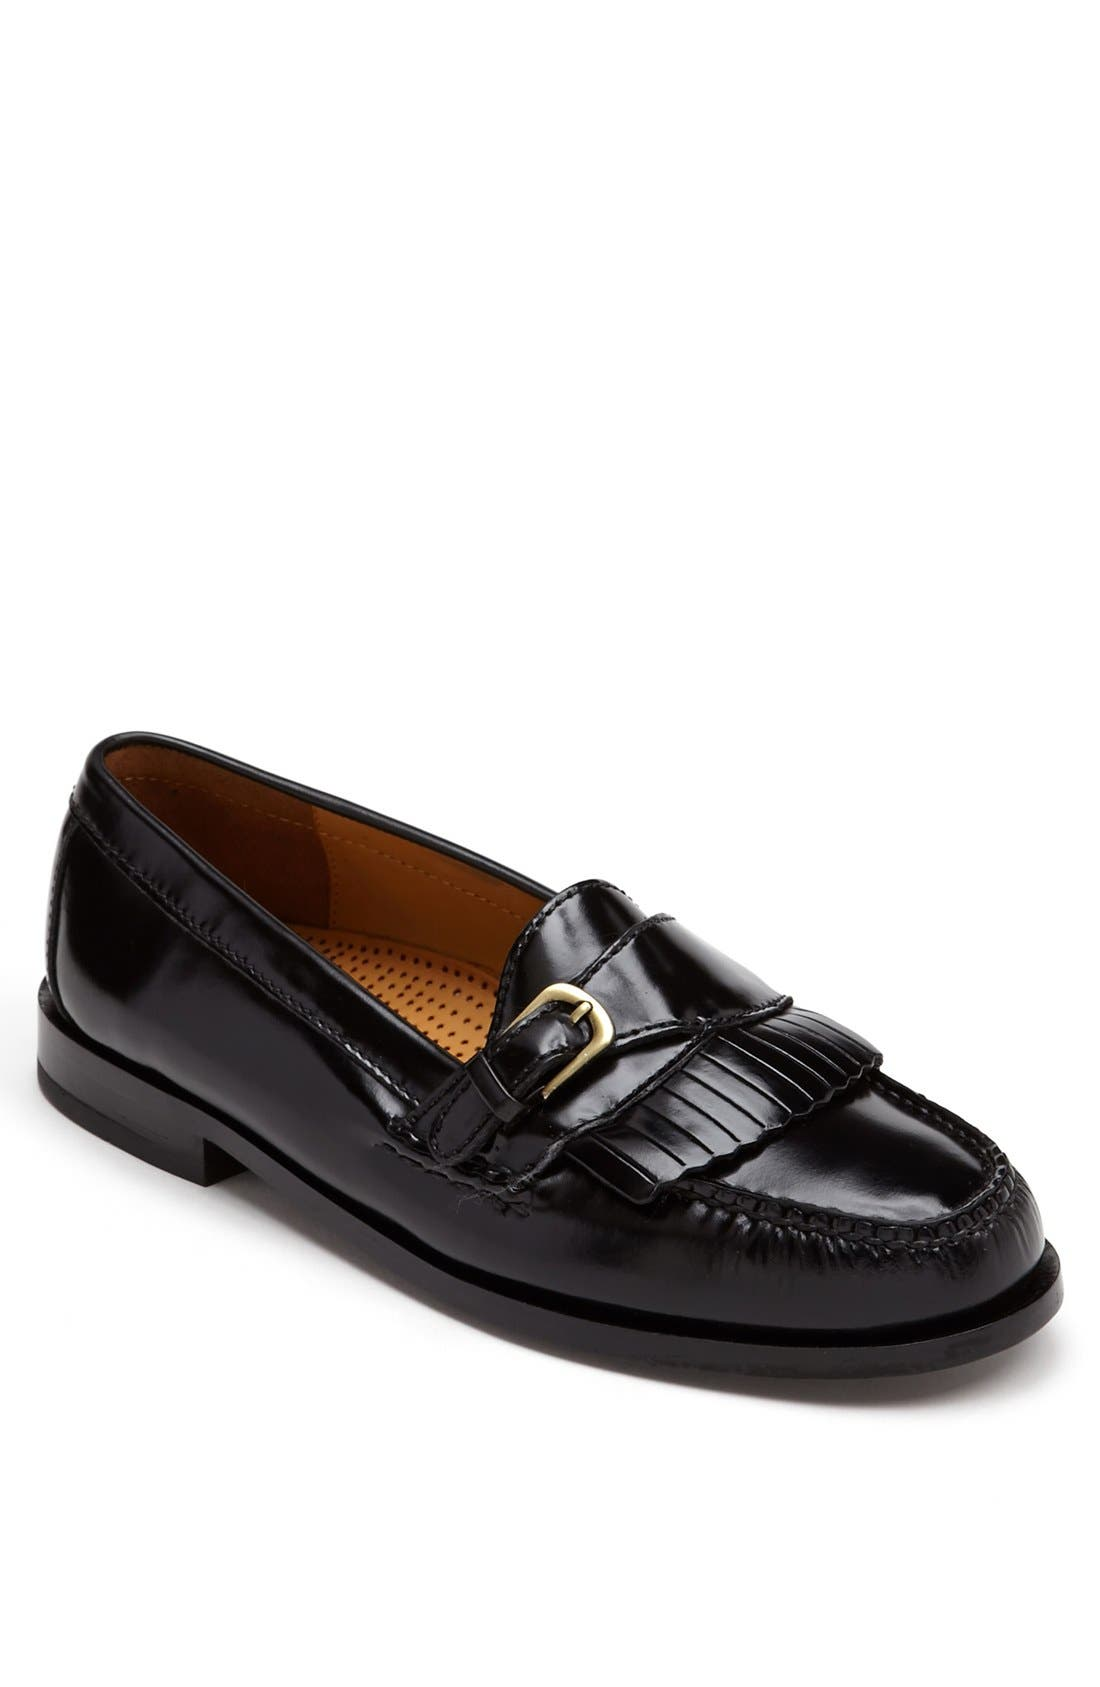 Main Image - Cole Haan 'Pinch Buckle' Loafer   (Men)